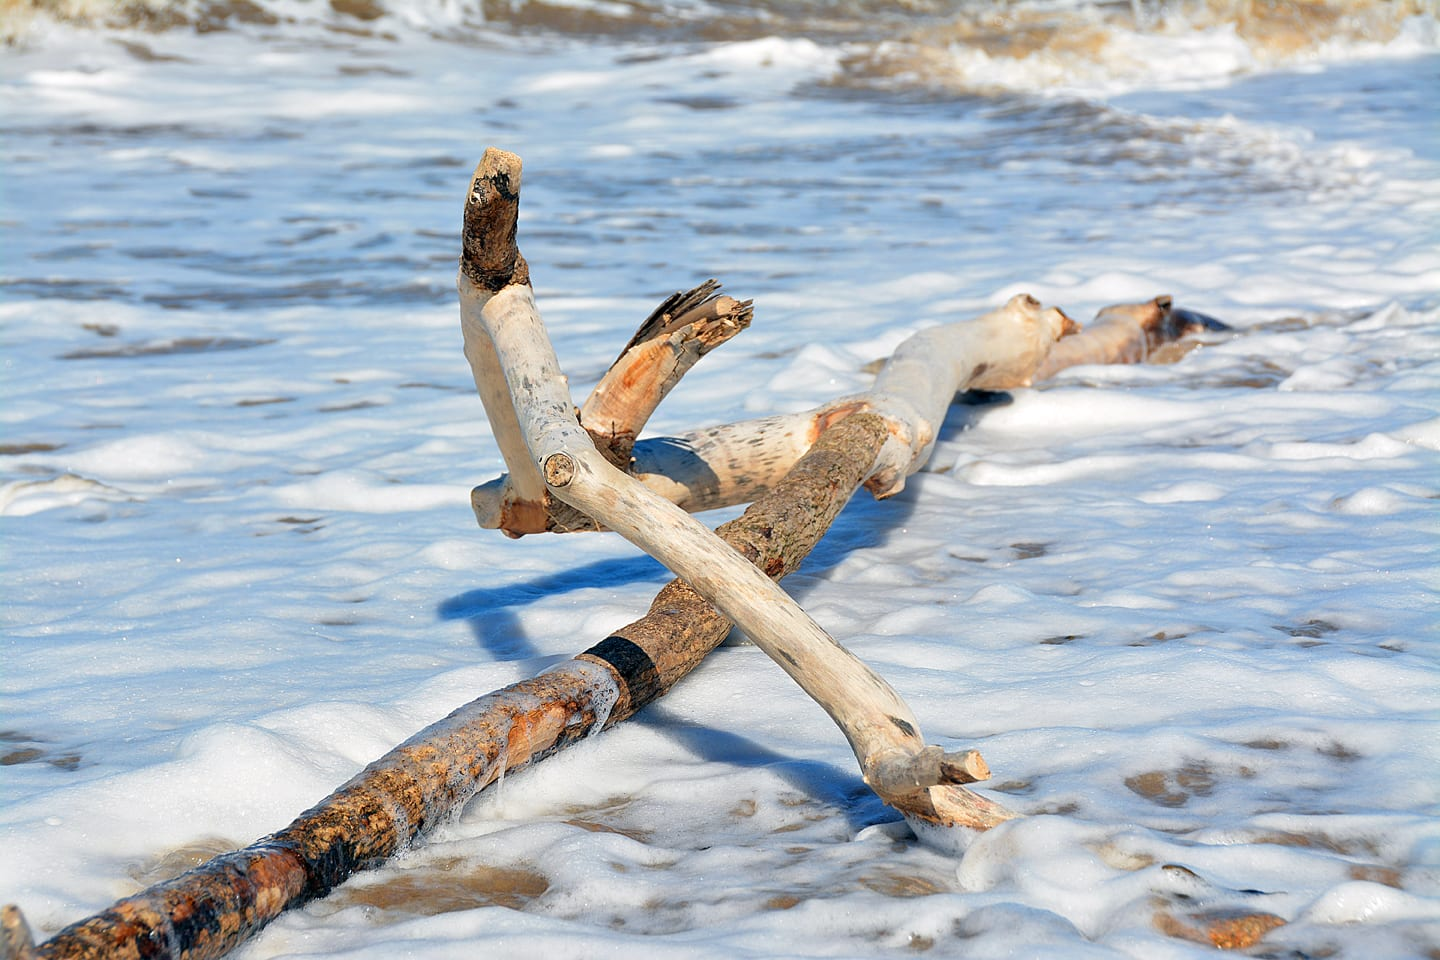 Buy Driftwood on the beach photo from the Seaside Emporium online shop